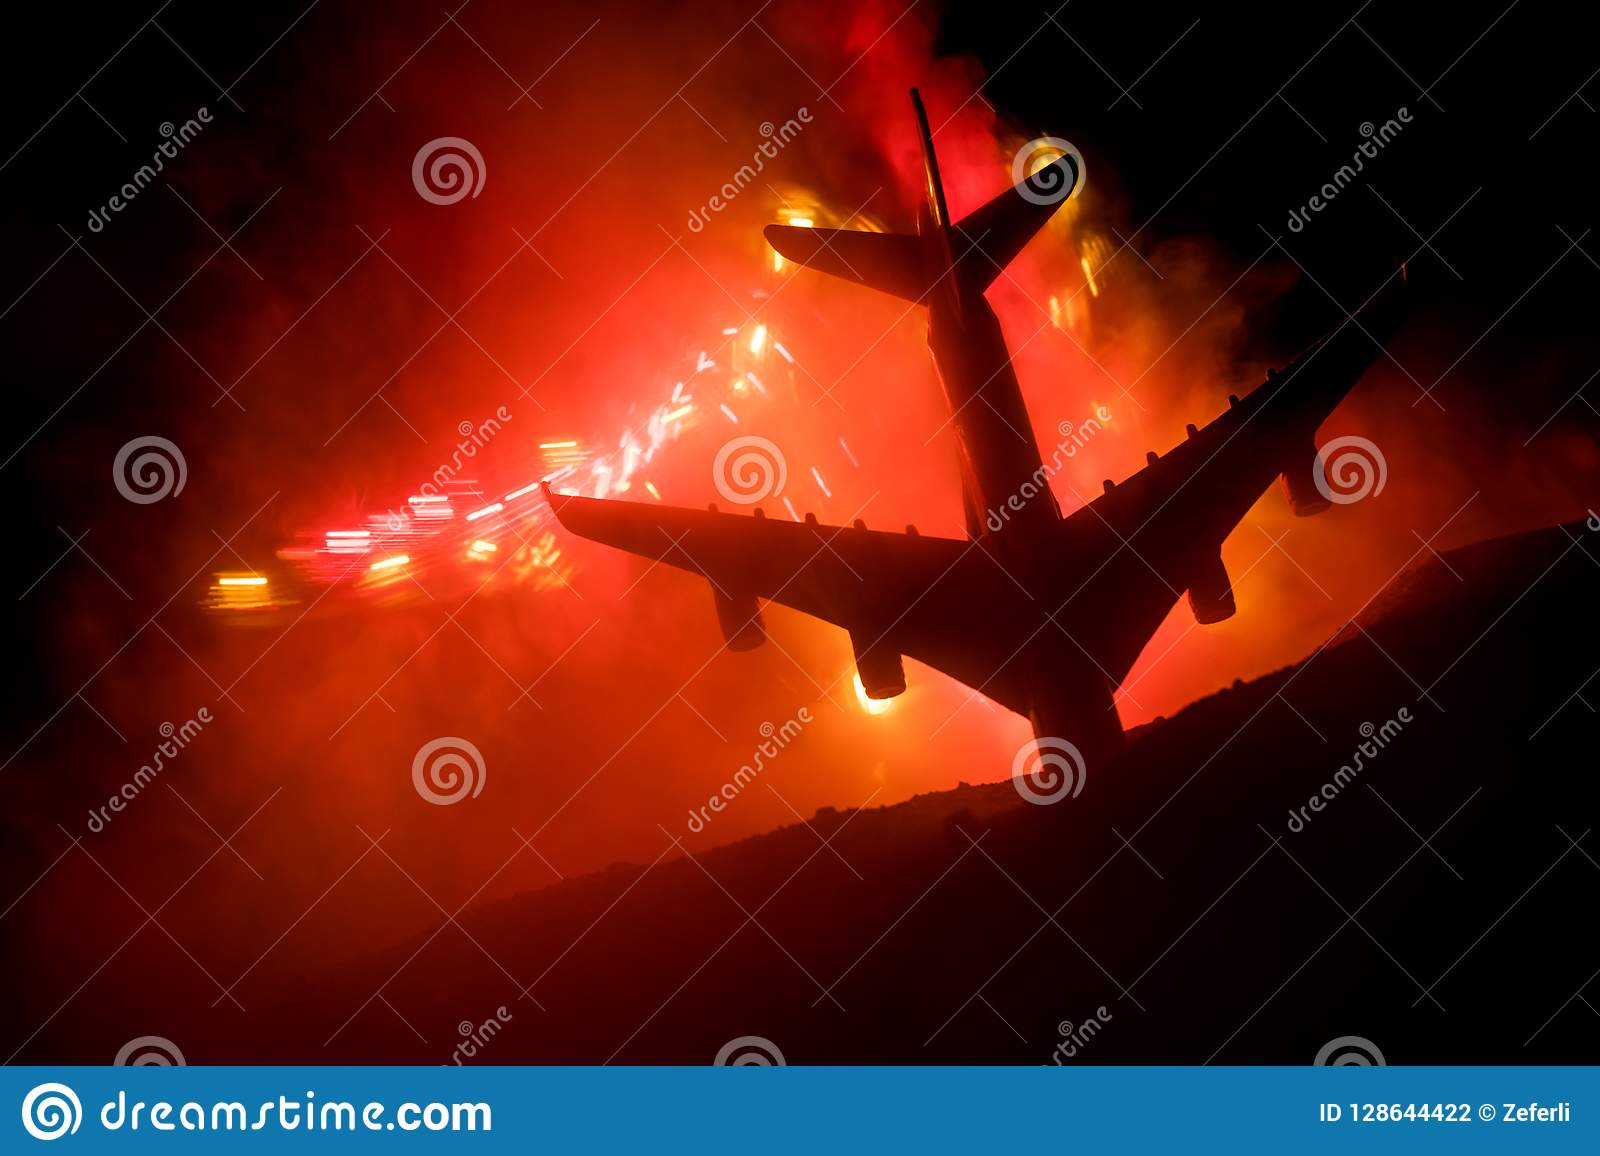 Air Crash. Burning falling plane. The plane crashed to the ground. Decorated with toy at dark fire background. Air accident concep